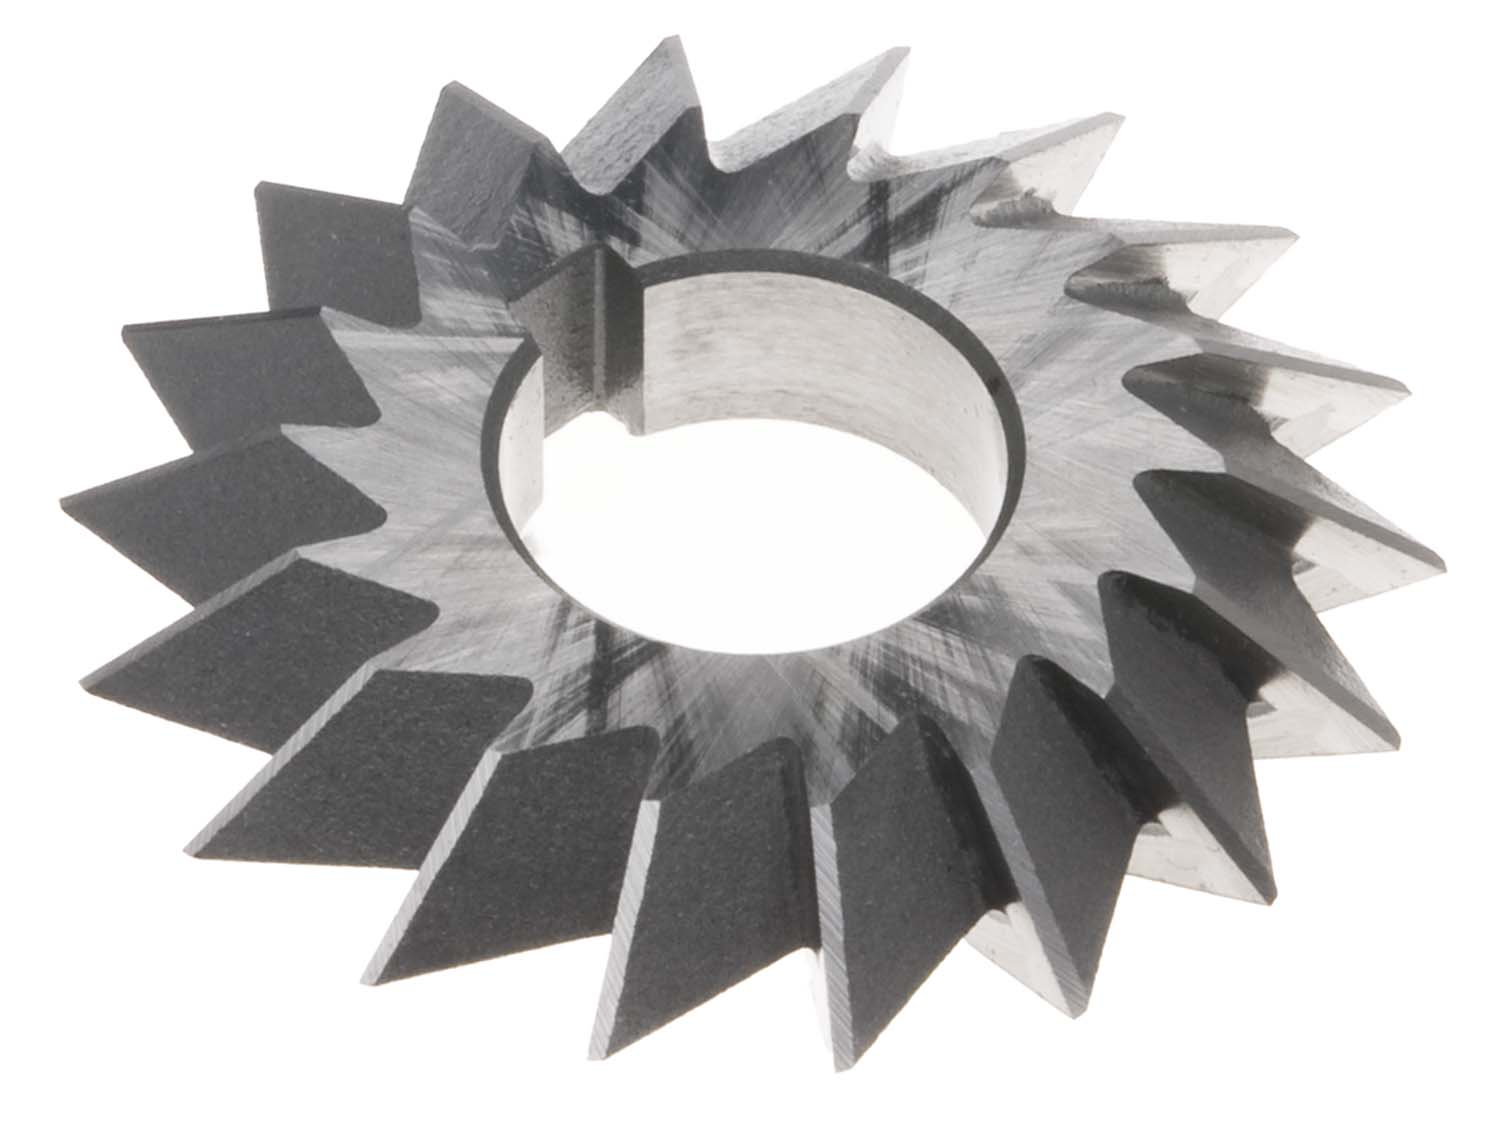 "6 X 1-1/2 X 1-1/4"" 60 Degree Double Angle Cutter, High Speed Steel"